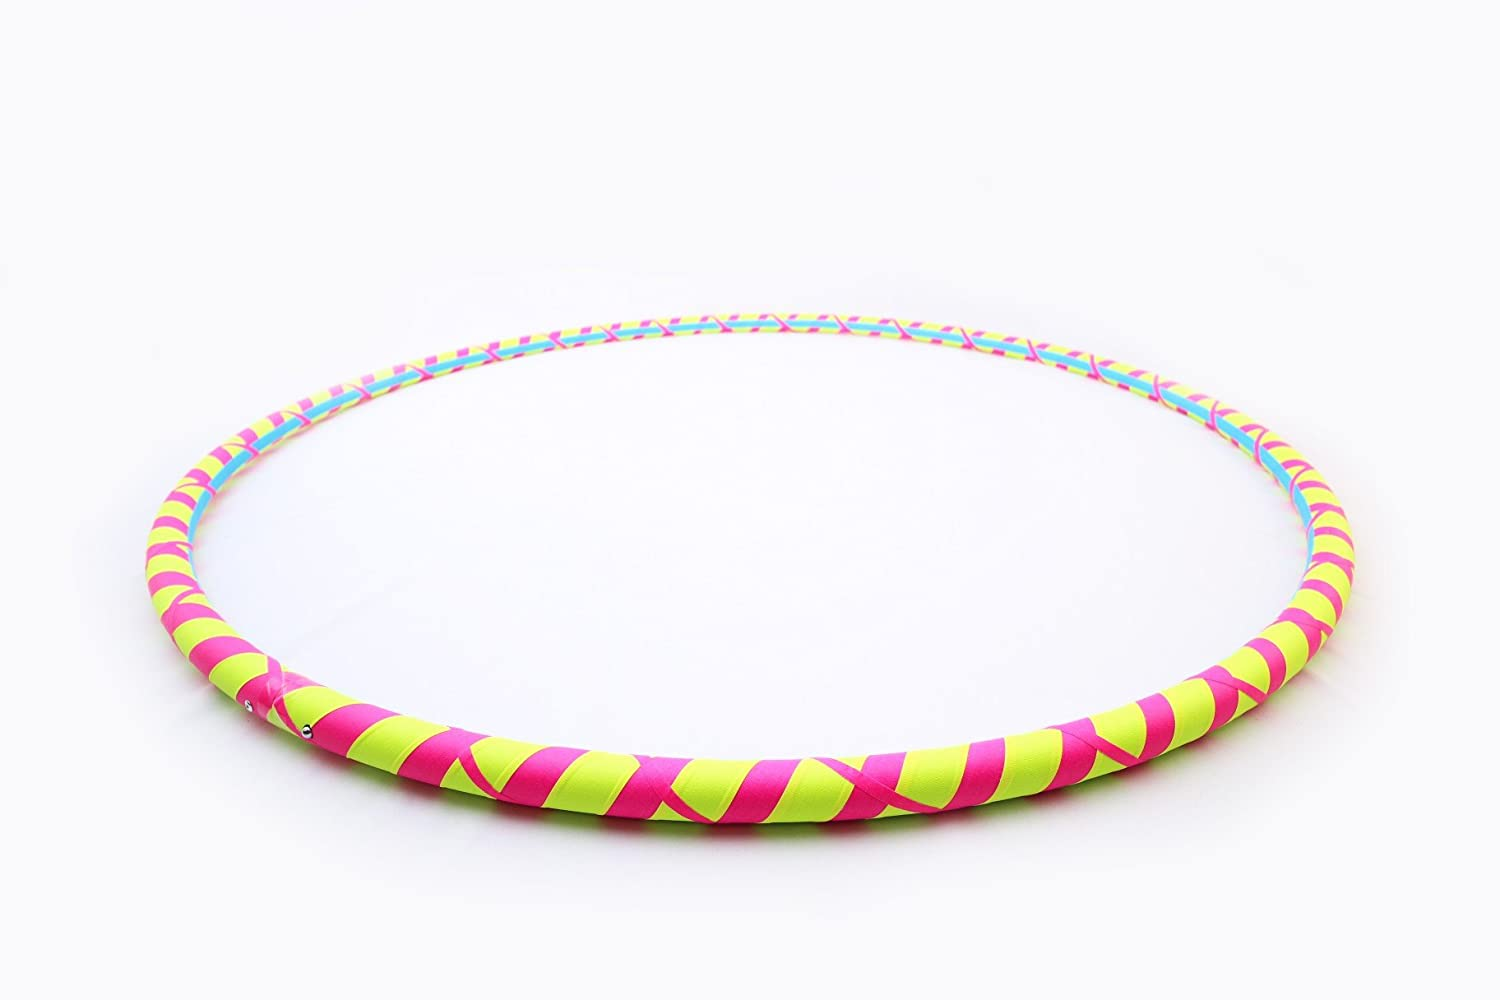 The Spinsterz Adult Beginner Hula Hoop